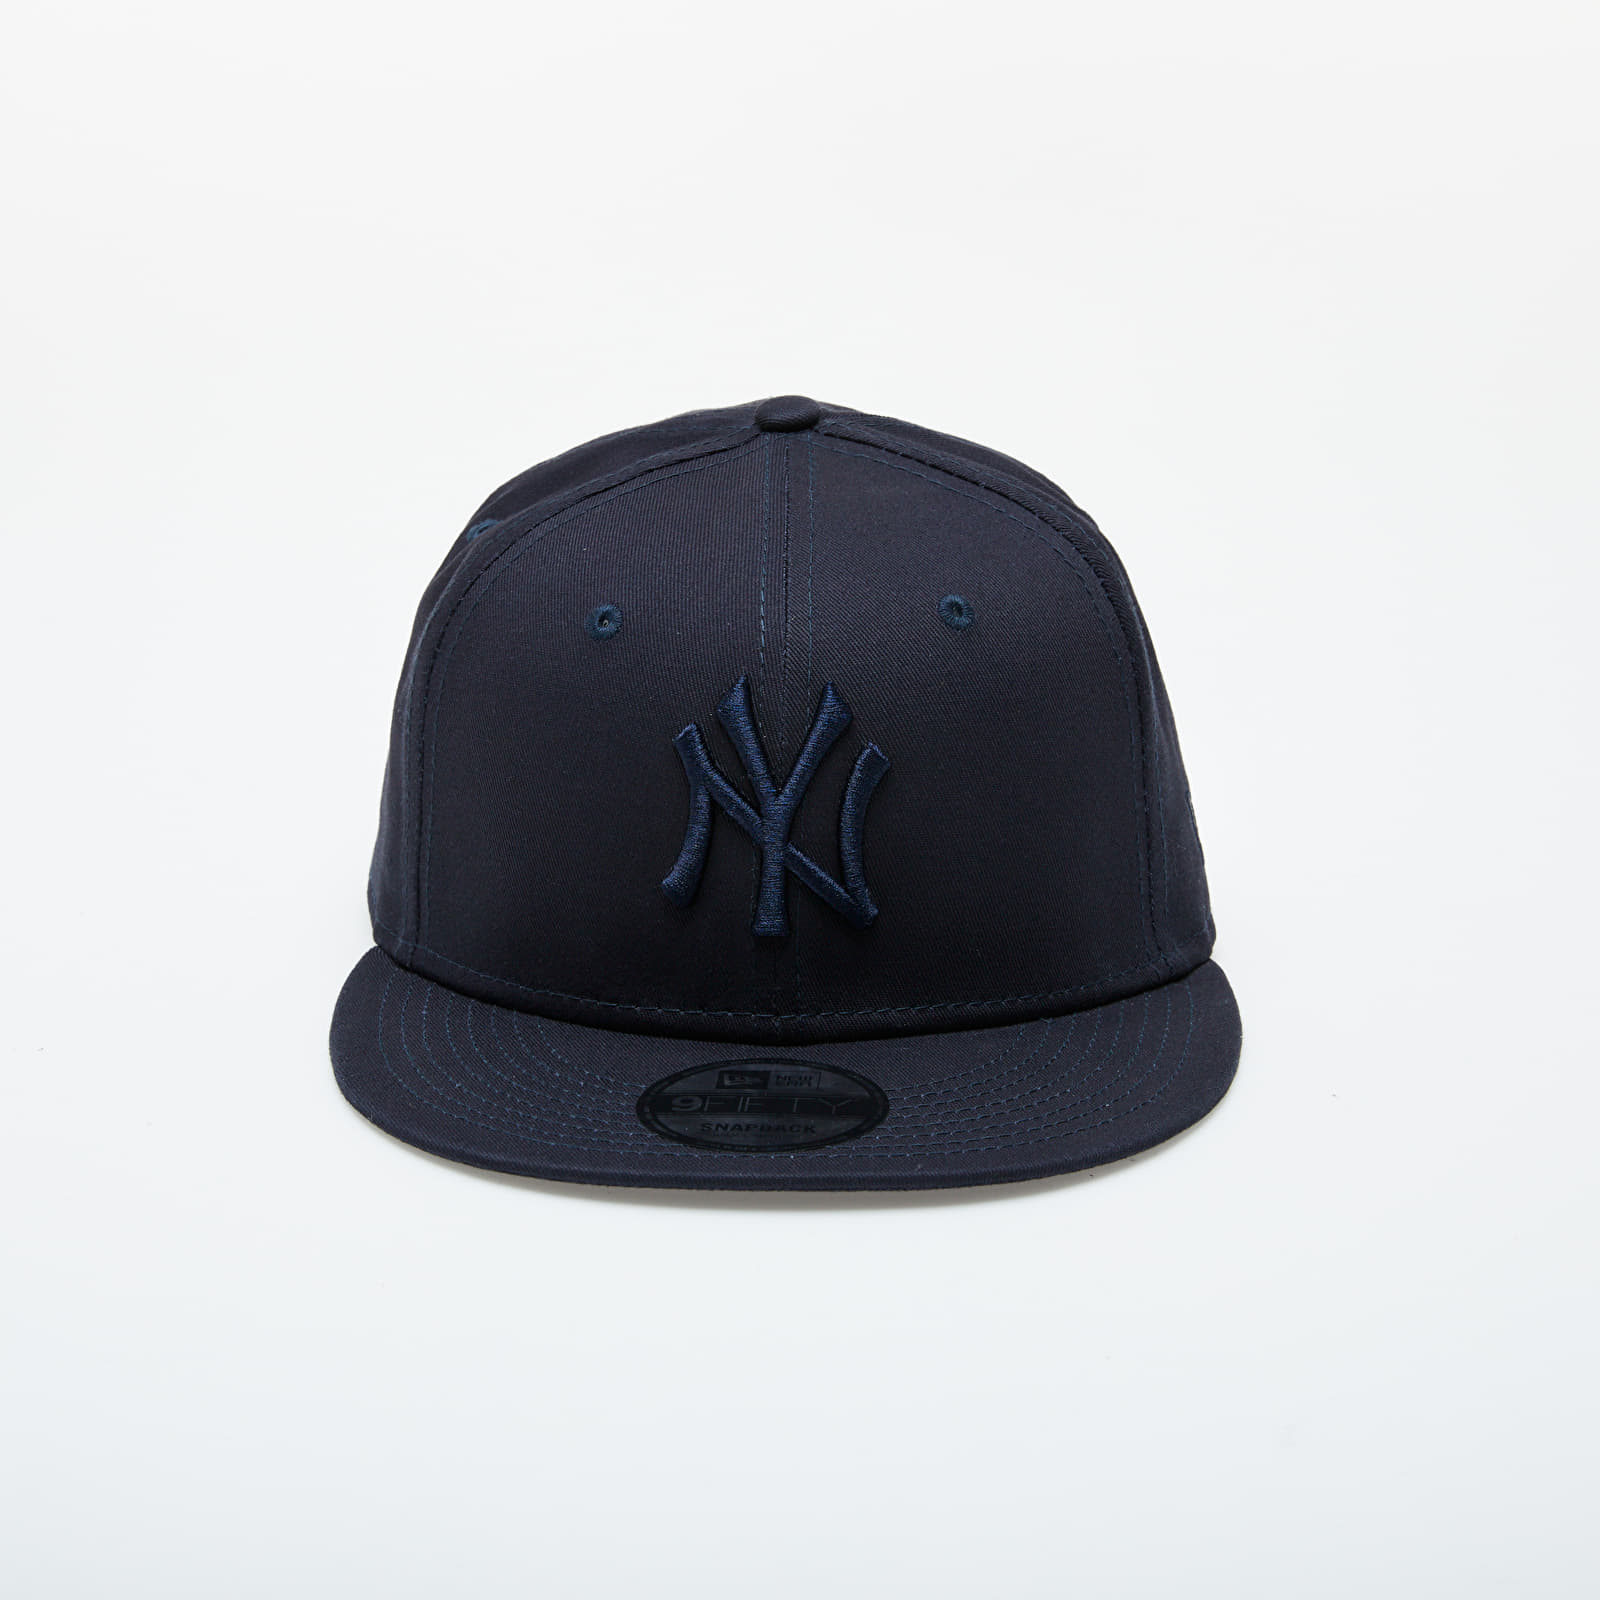 New Era 9Fifty New Era 9Fifty MLB League Essential New York Yankees Cap Navy